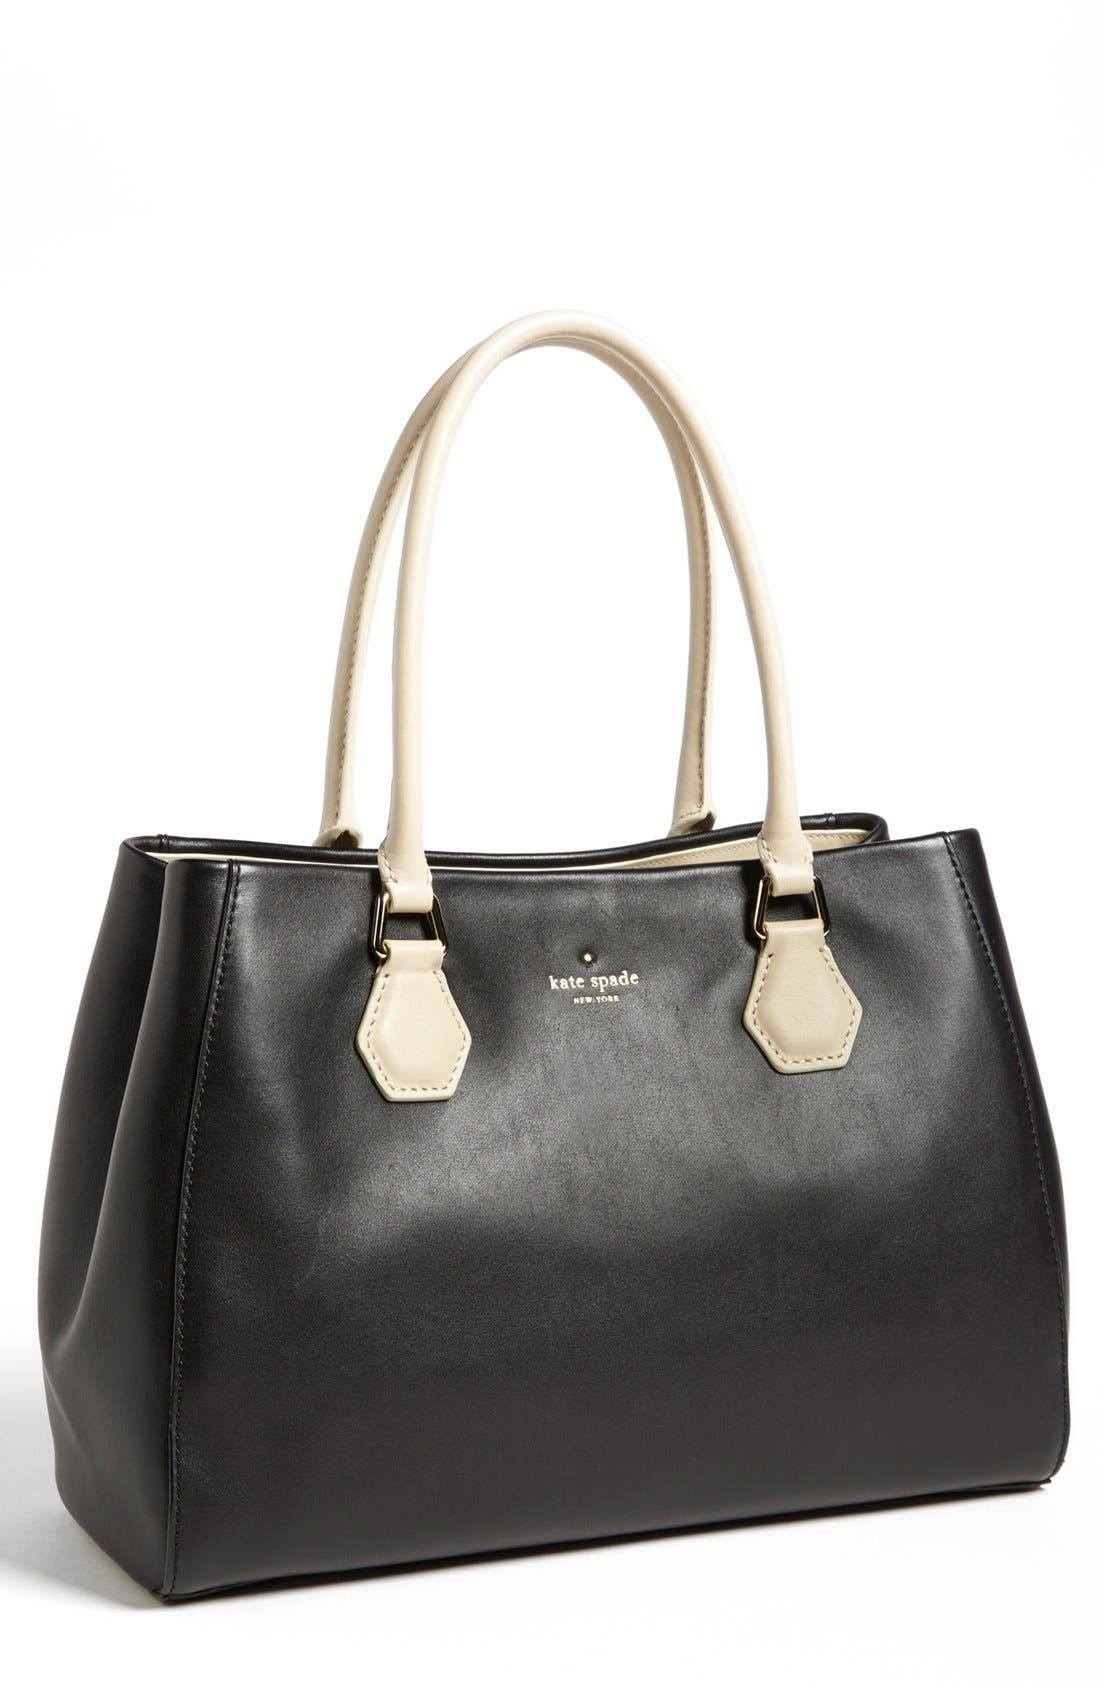 Main Image - kate spade new york 'catherine street - wensley' leather tote